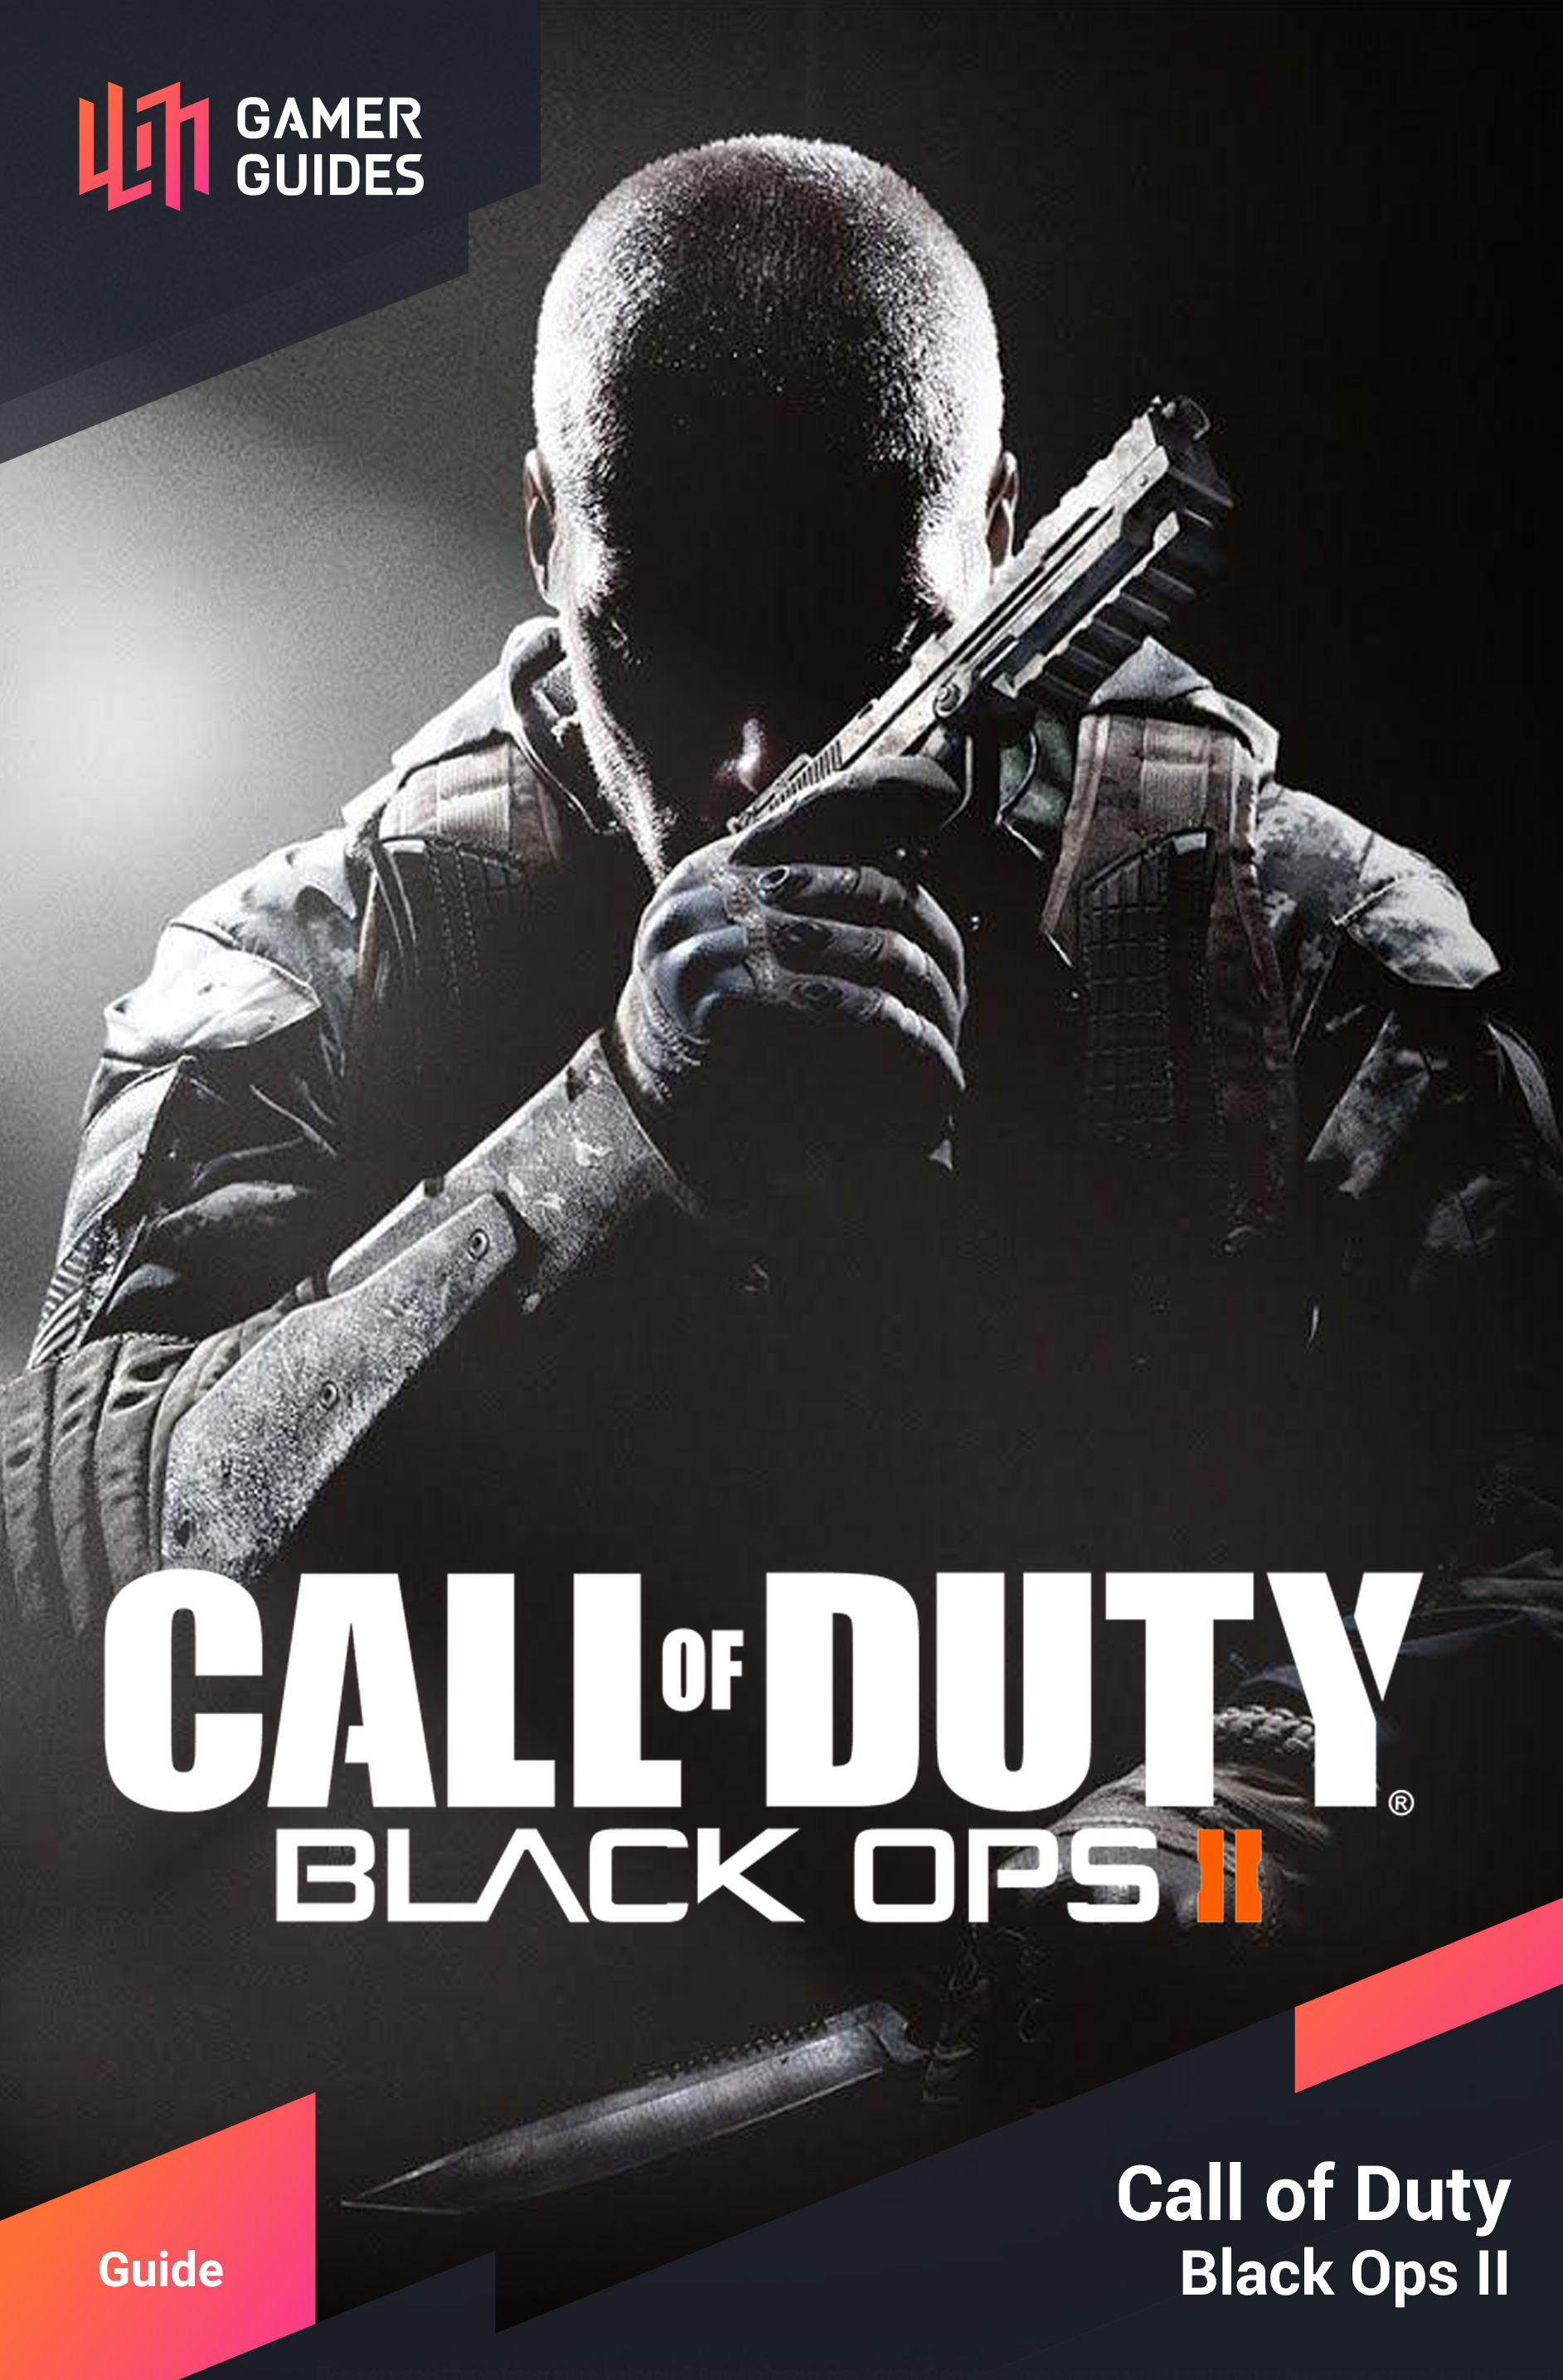 Call of Duty: Black Ops II | Gamer Guides